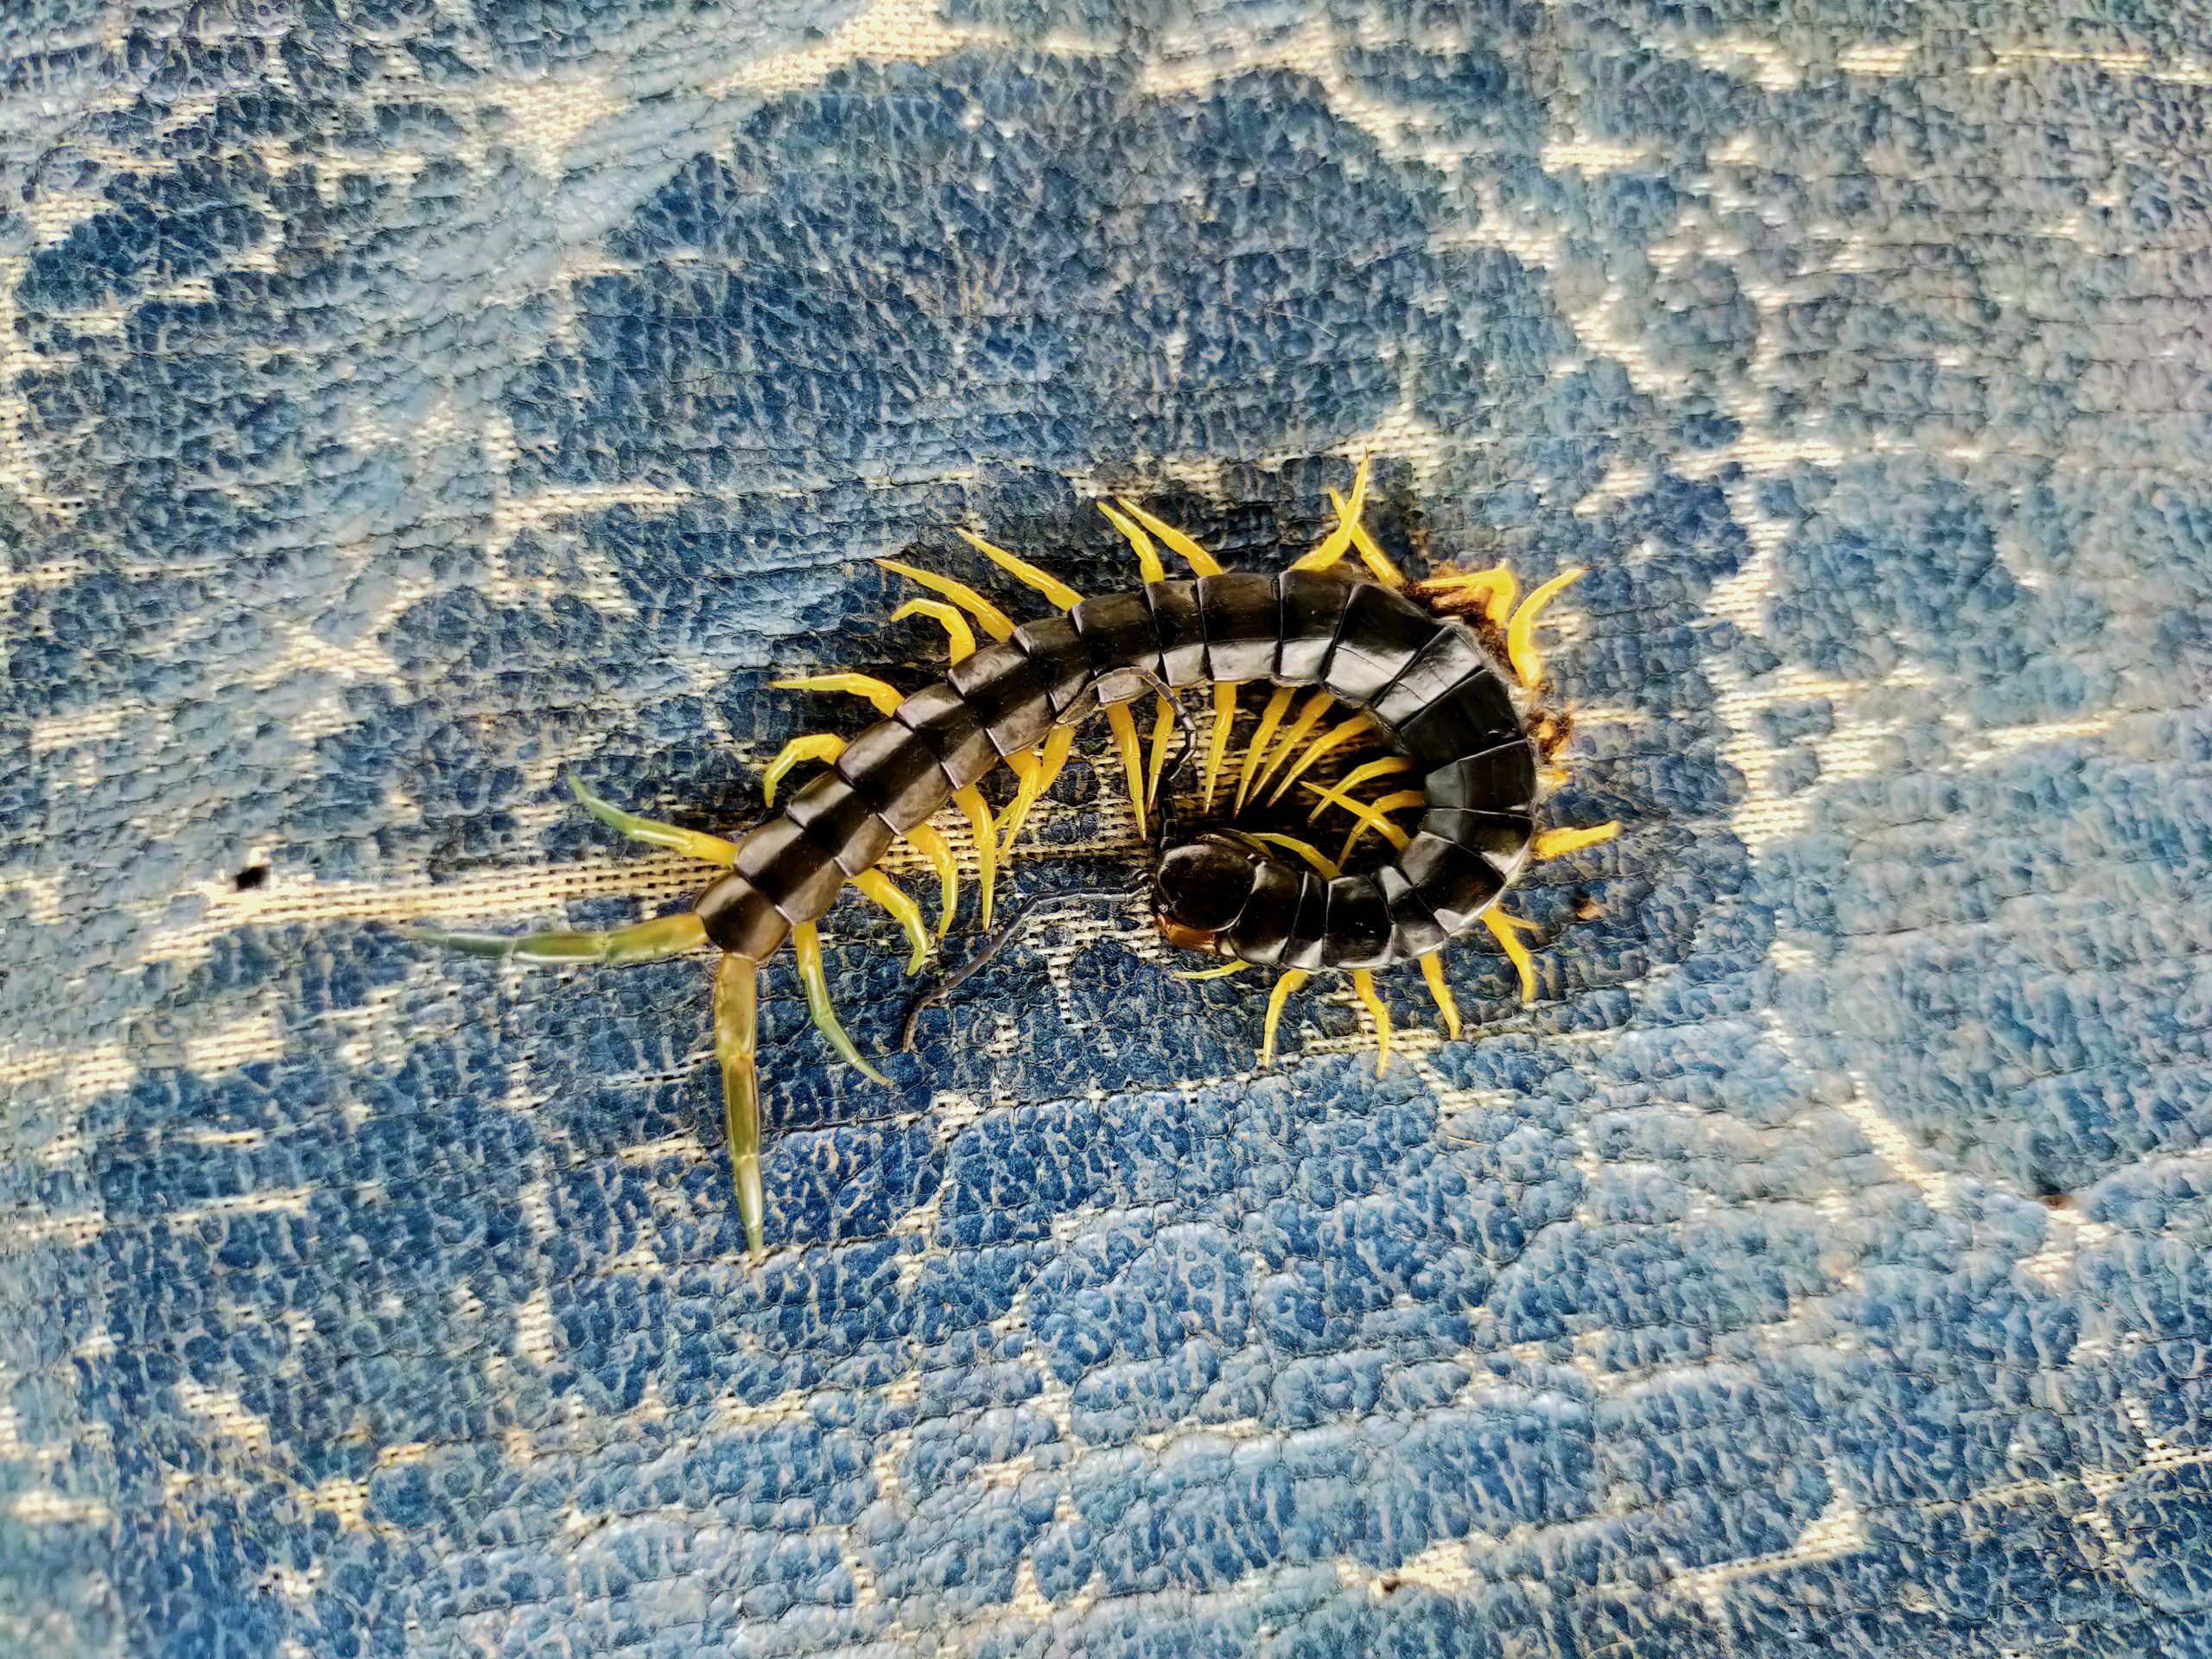 A centipede on the ground